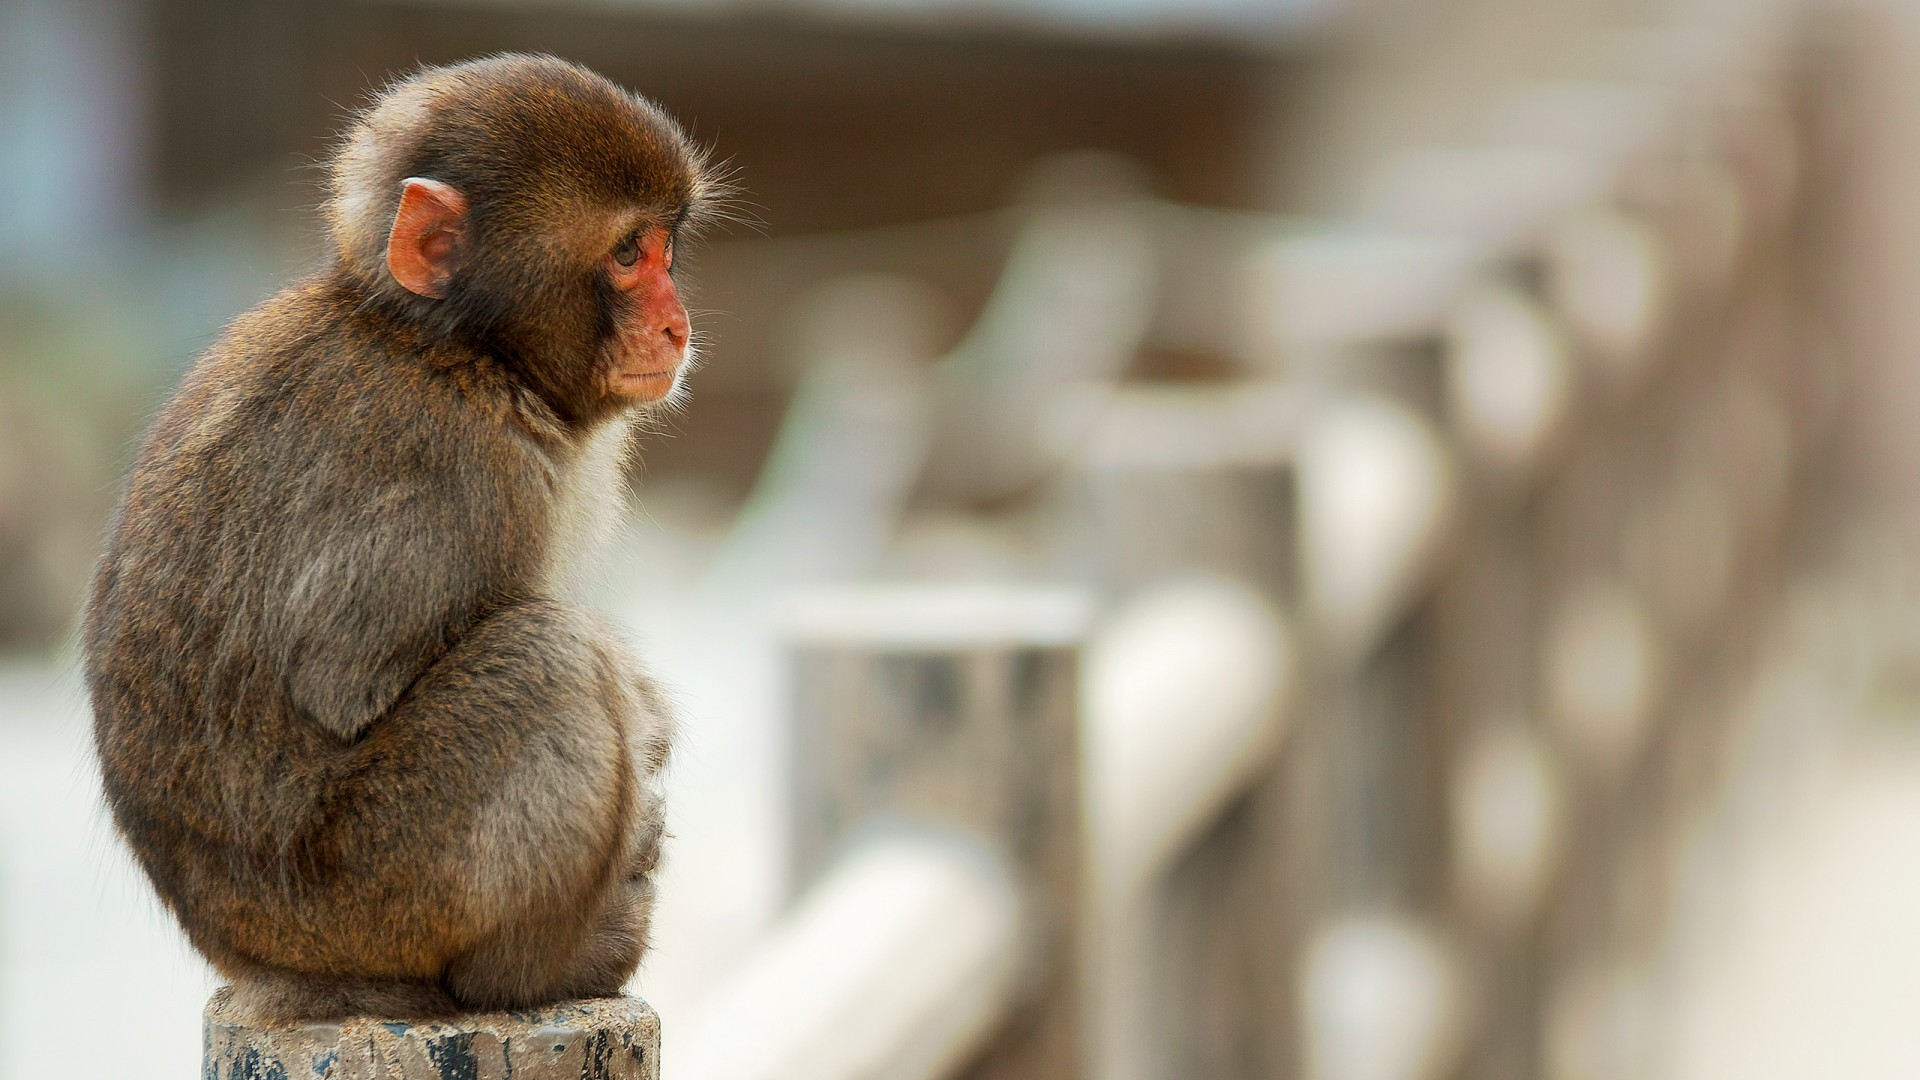 Monkey Wallpapers HD Pictures – One HD Wallpaper Pictures